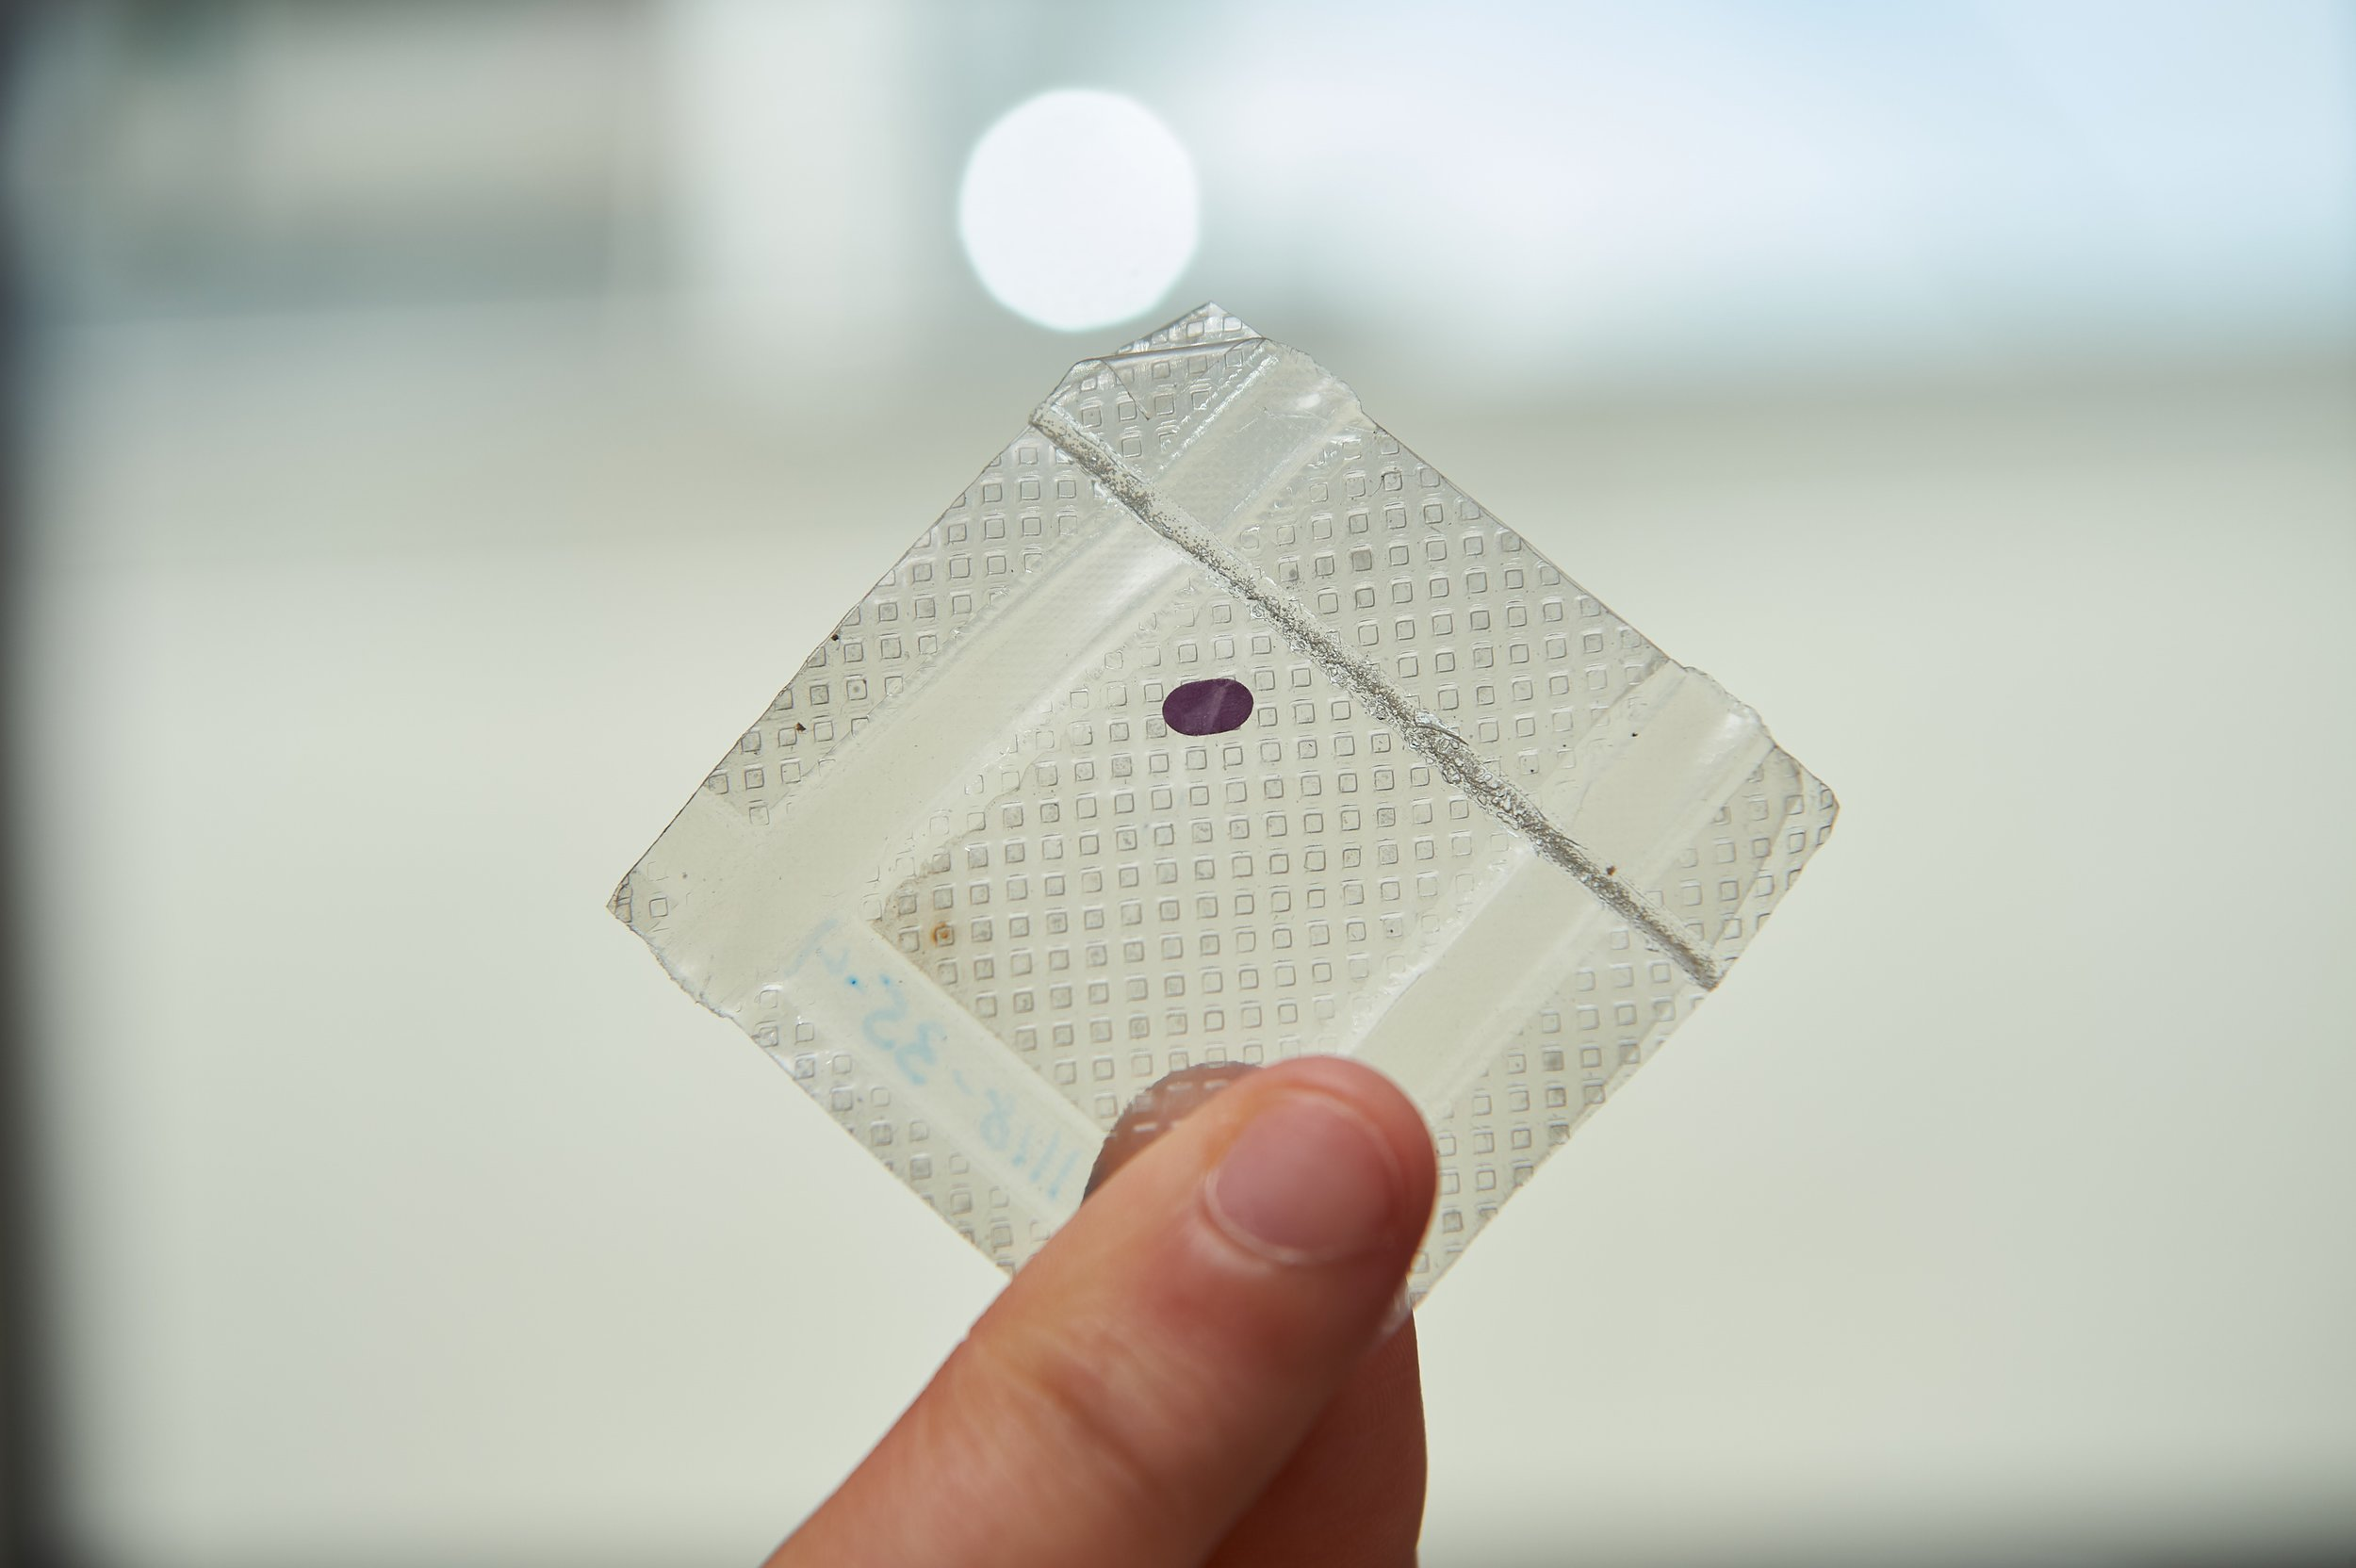 Purple section is the LambdaVision protein-based retinal implant. Credit: Peter Morenus/UConn Photo